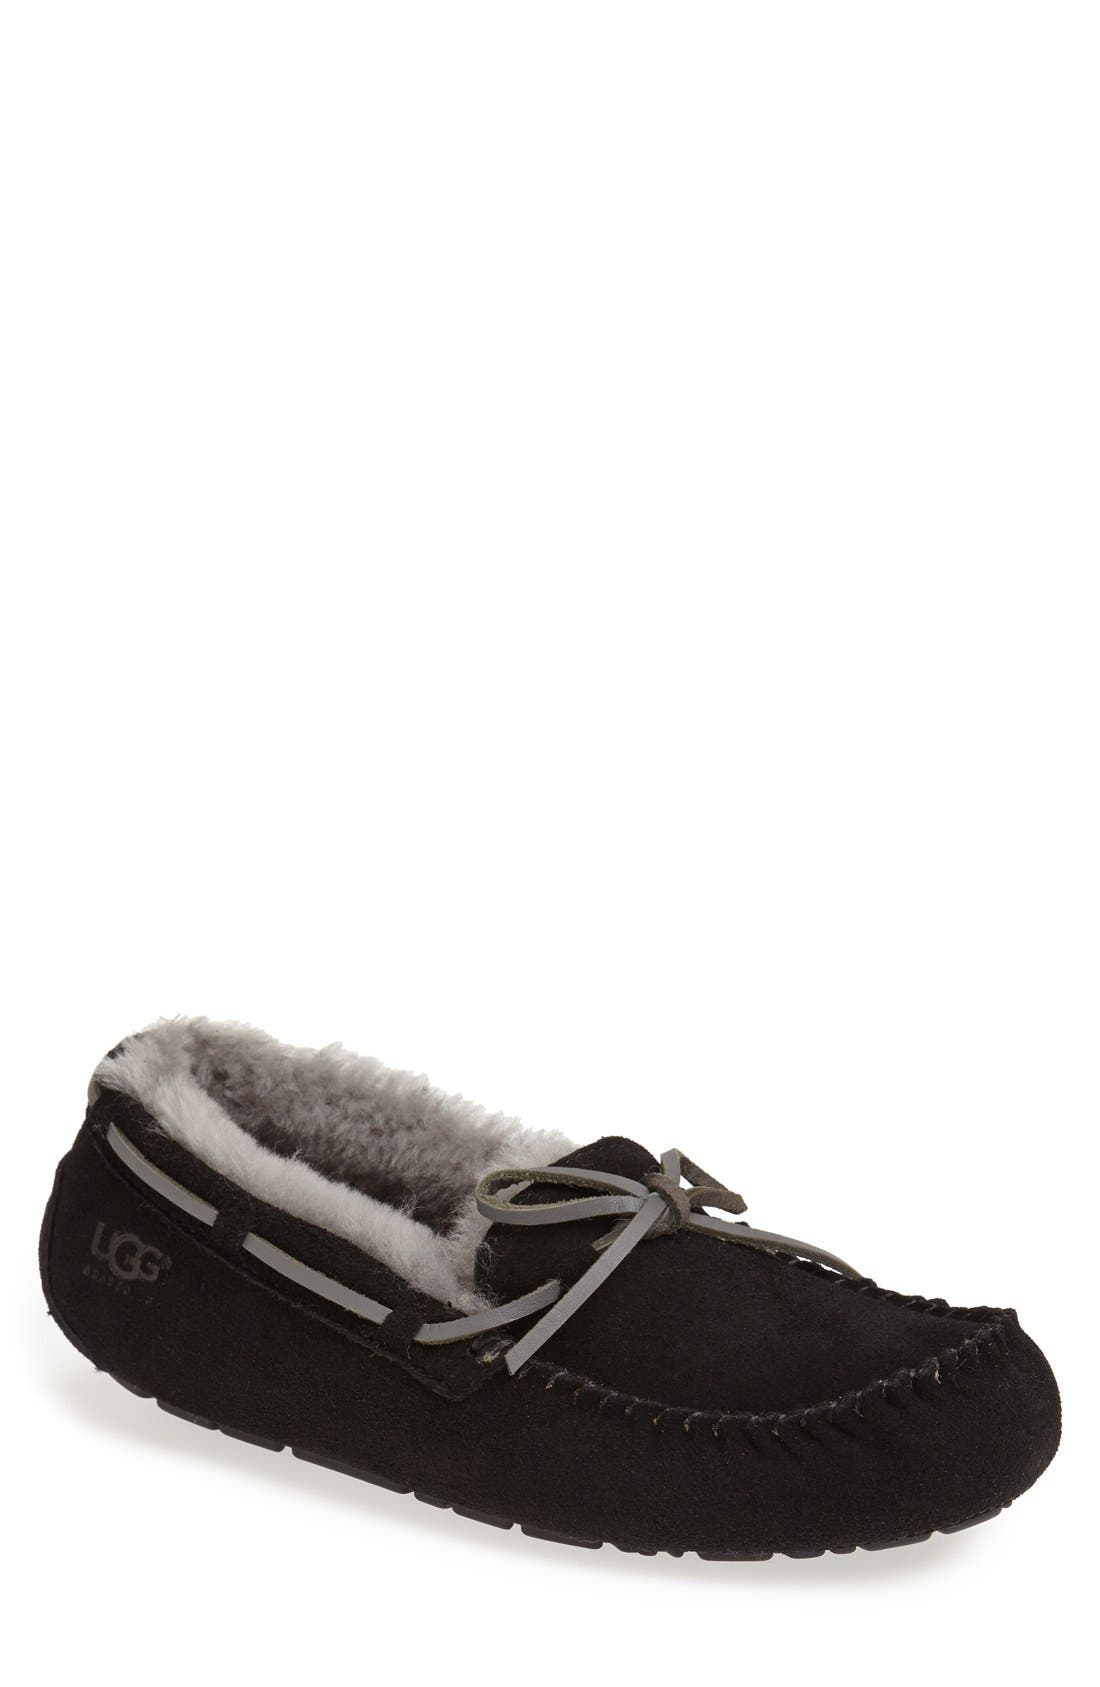 5955e77ac8e3 Ugg Slippers - Men s - Shearling   Sheepskin Slippers by Ugg Australia